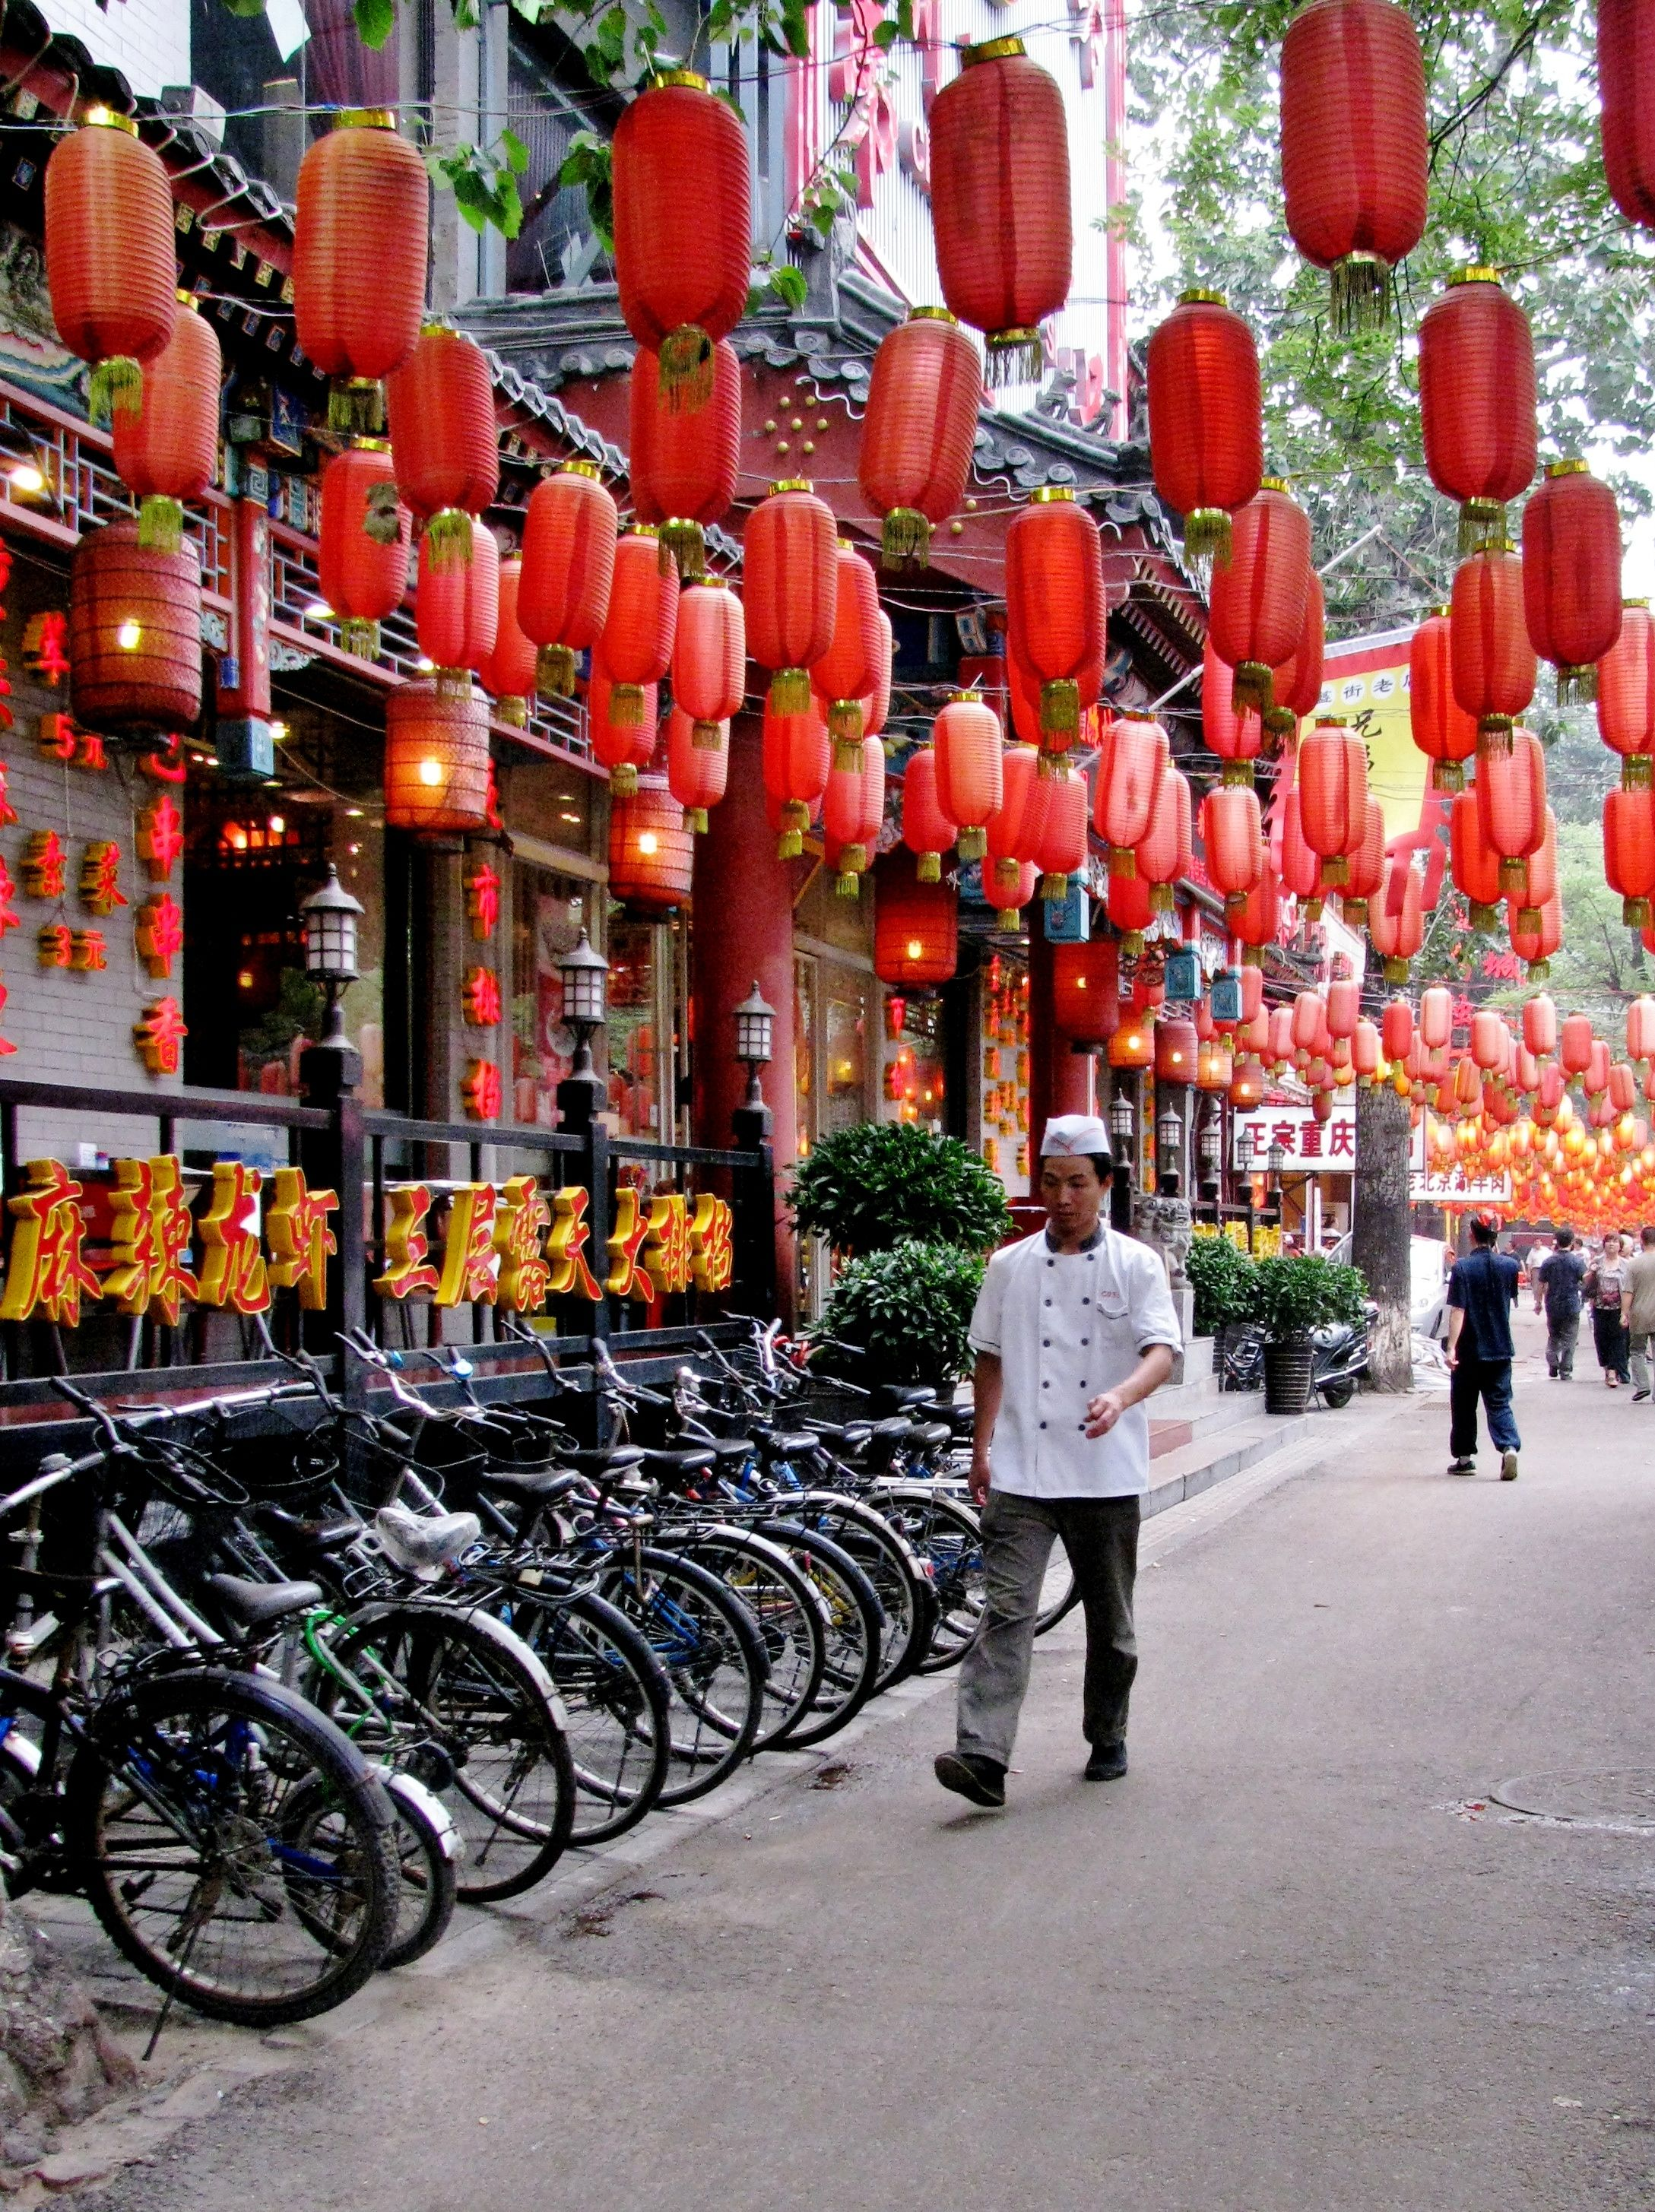 Guijie Meaning Ghost Street A Street In Beijing S Dongzhimen District With Hundreds Of Restaurants China Beijing China Beijing Tours China Travel